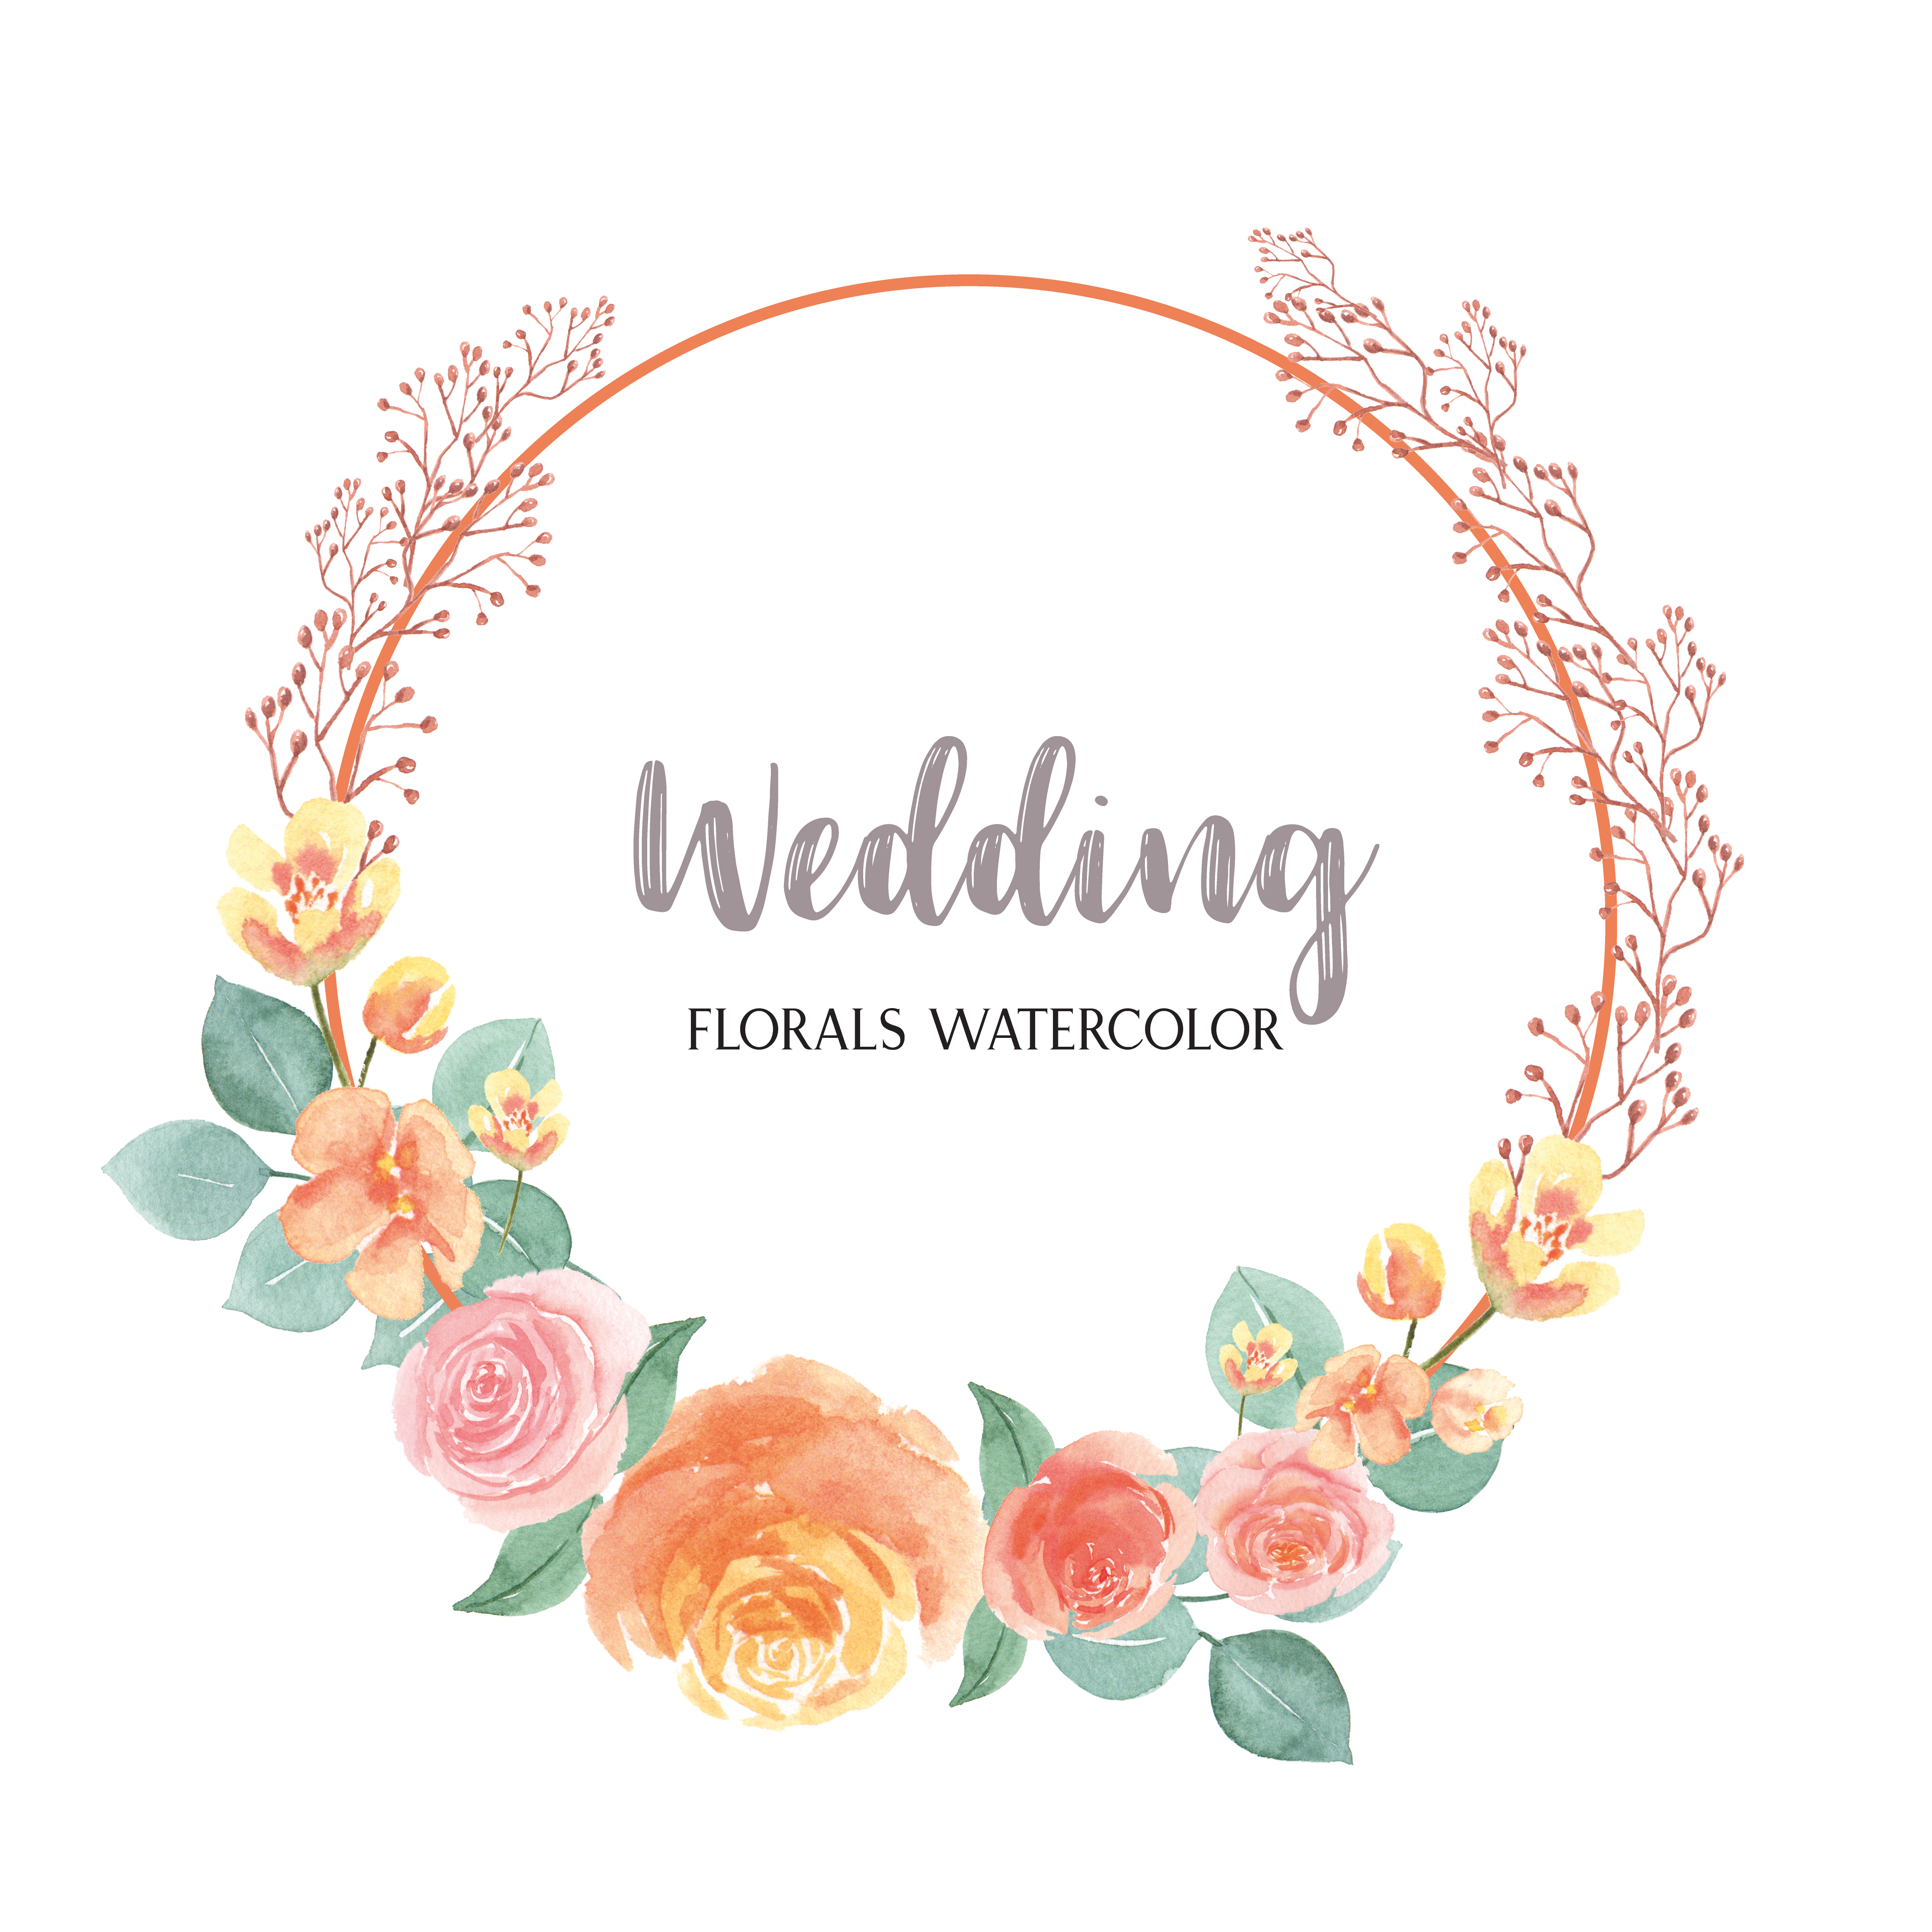 watercolor florals hand painted with text wreaths frame